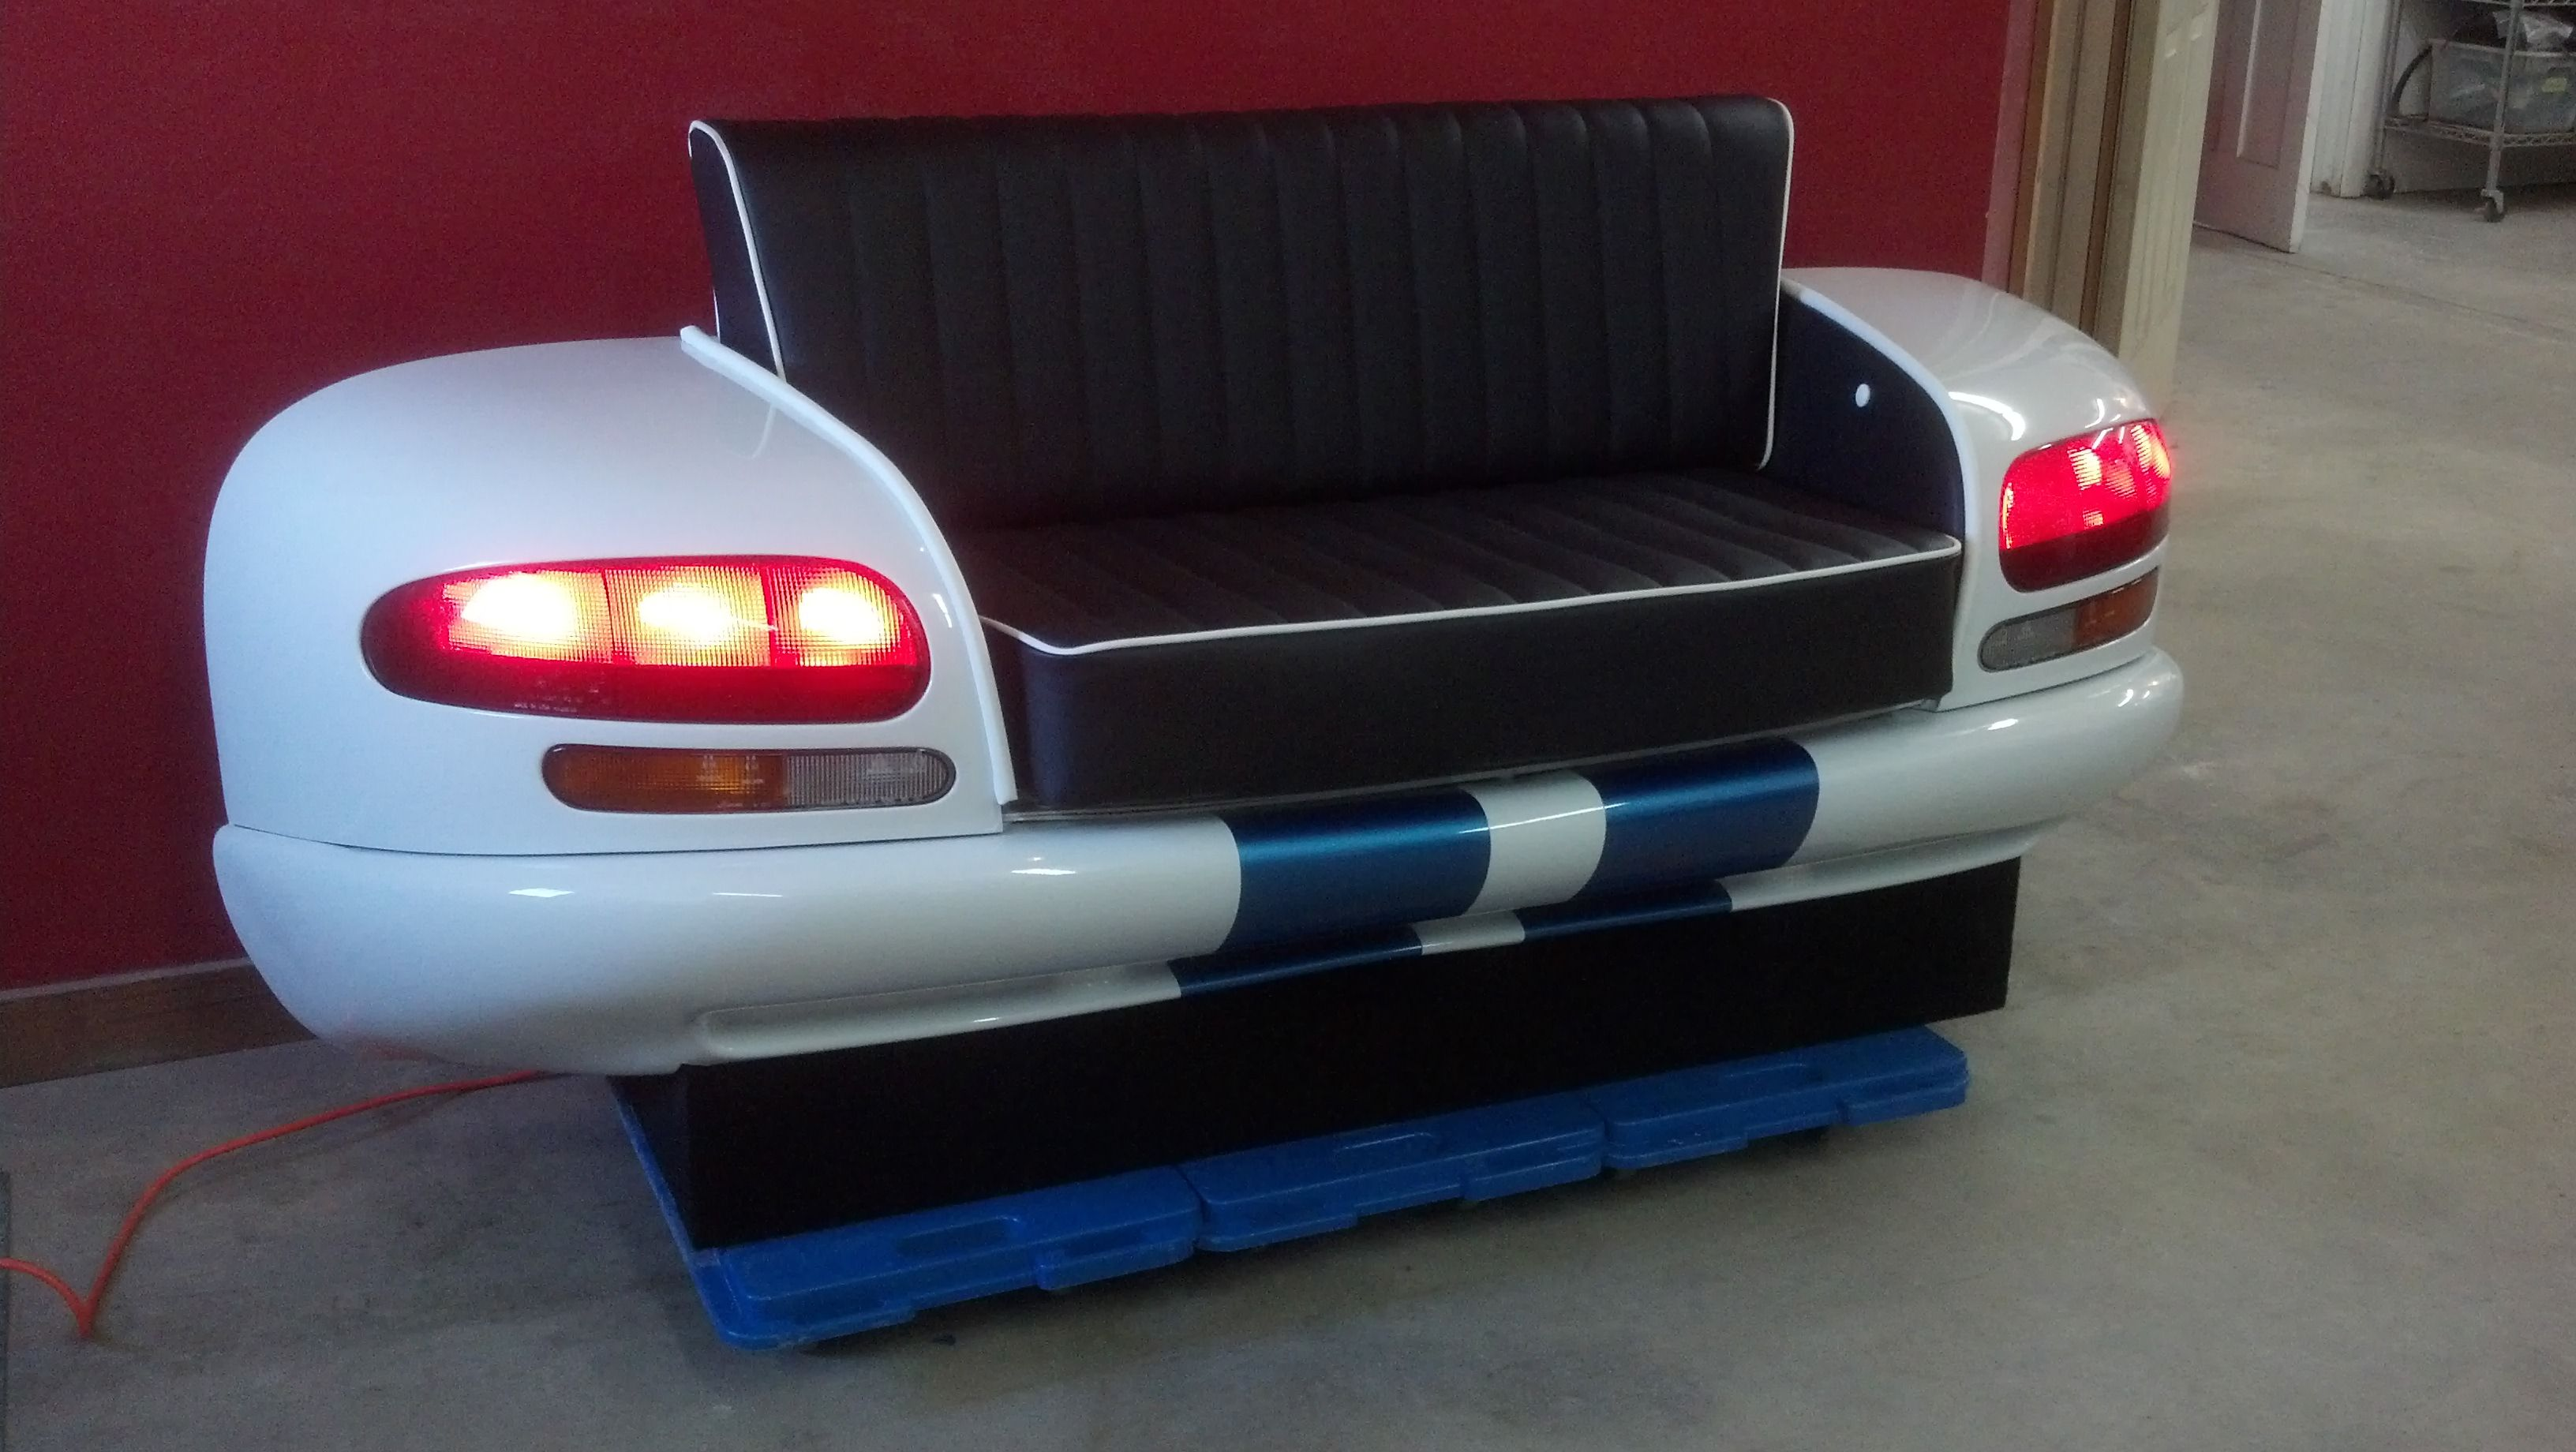 dodge viper office chair. \u002796 Dodge Viper Couch! Made From A Real Car With Working Tail Lights! Office Chair